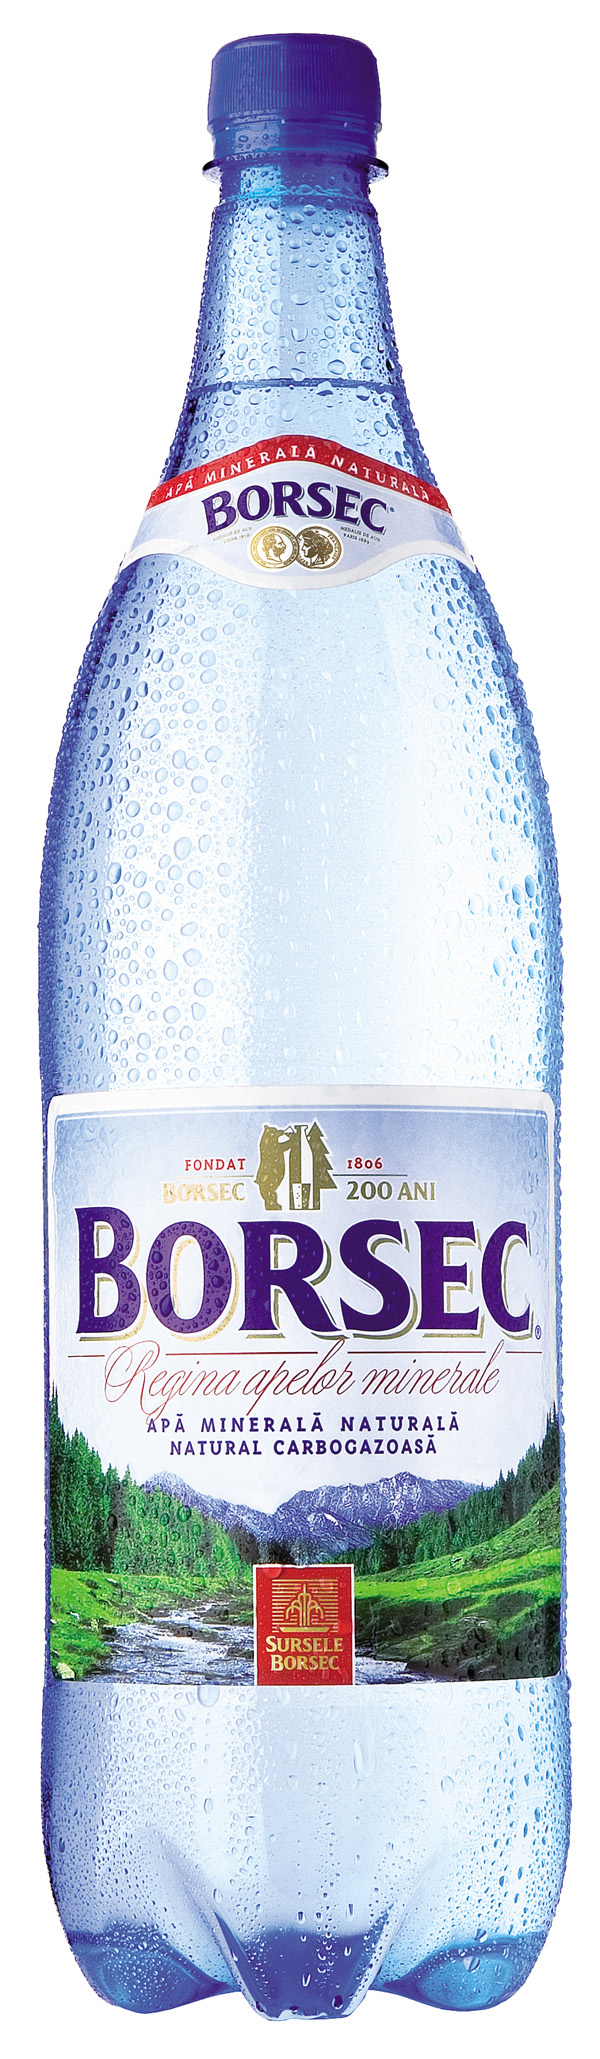 Borsec_Blue_Bottle